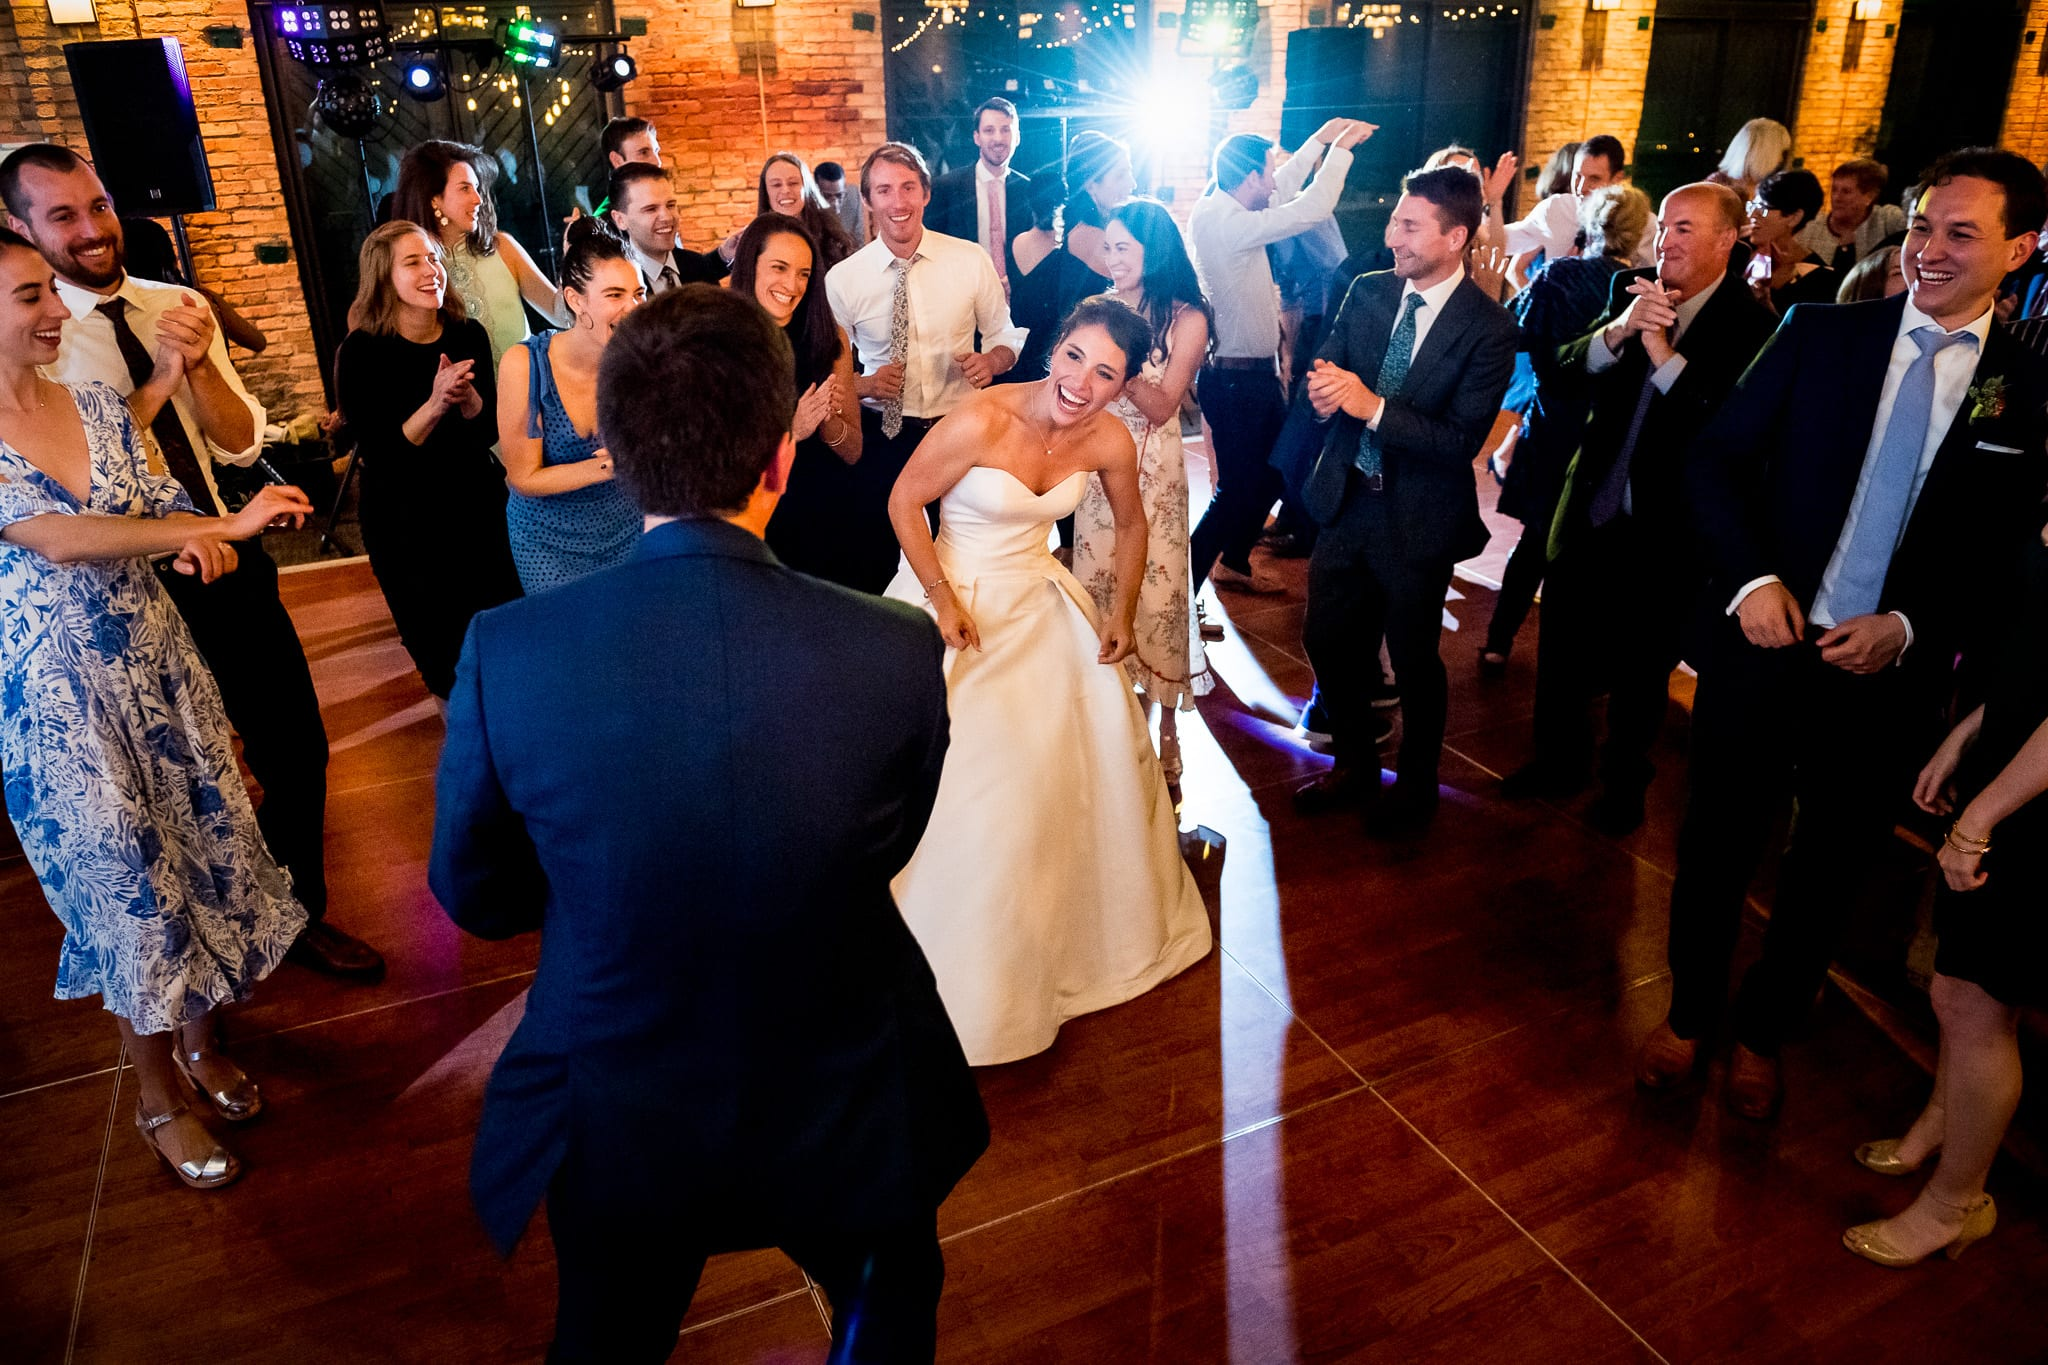 Bride laughing as she dance in the circle